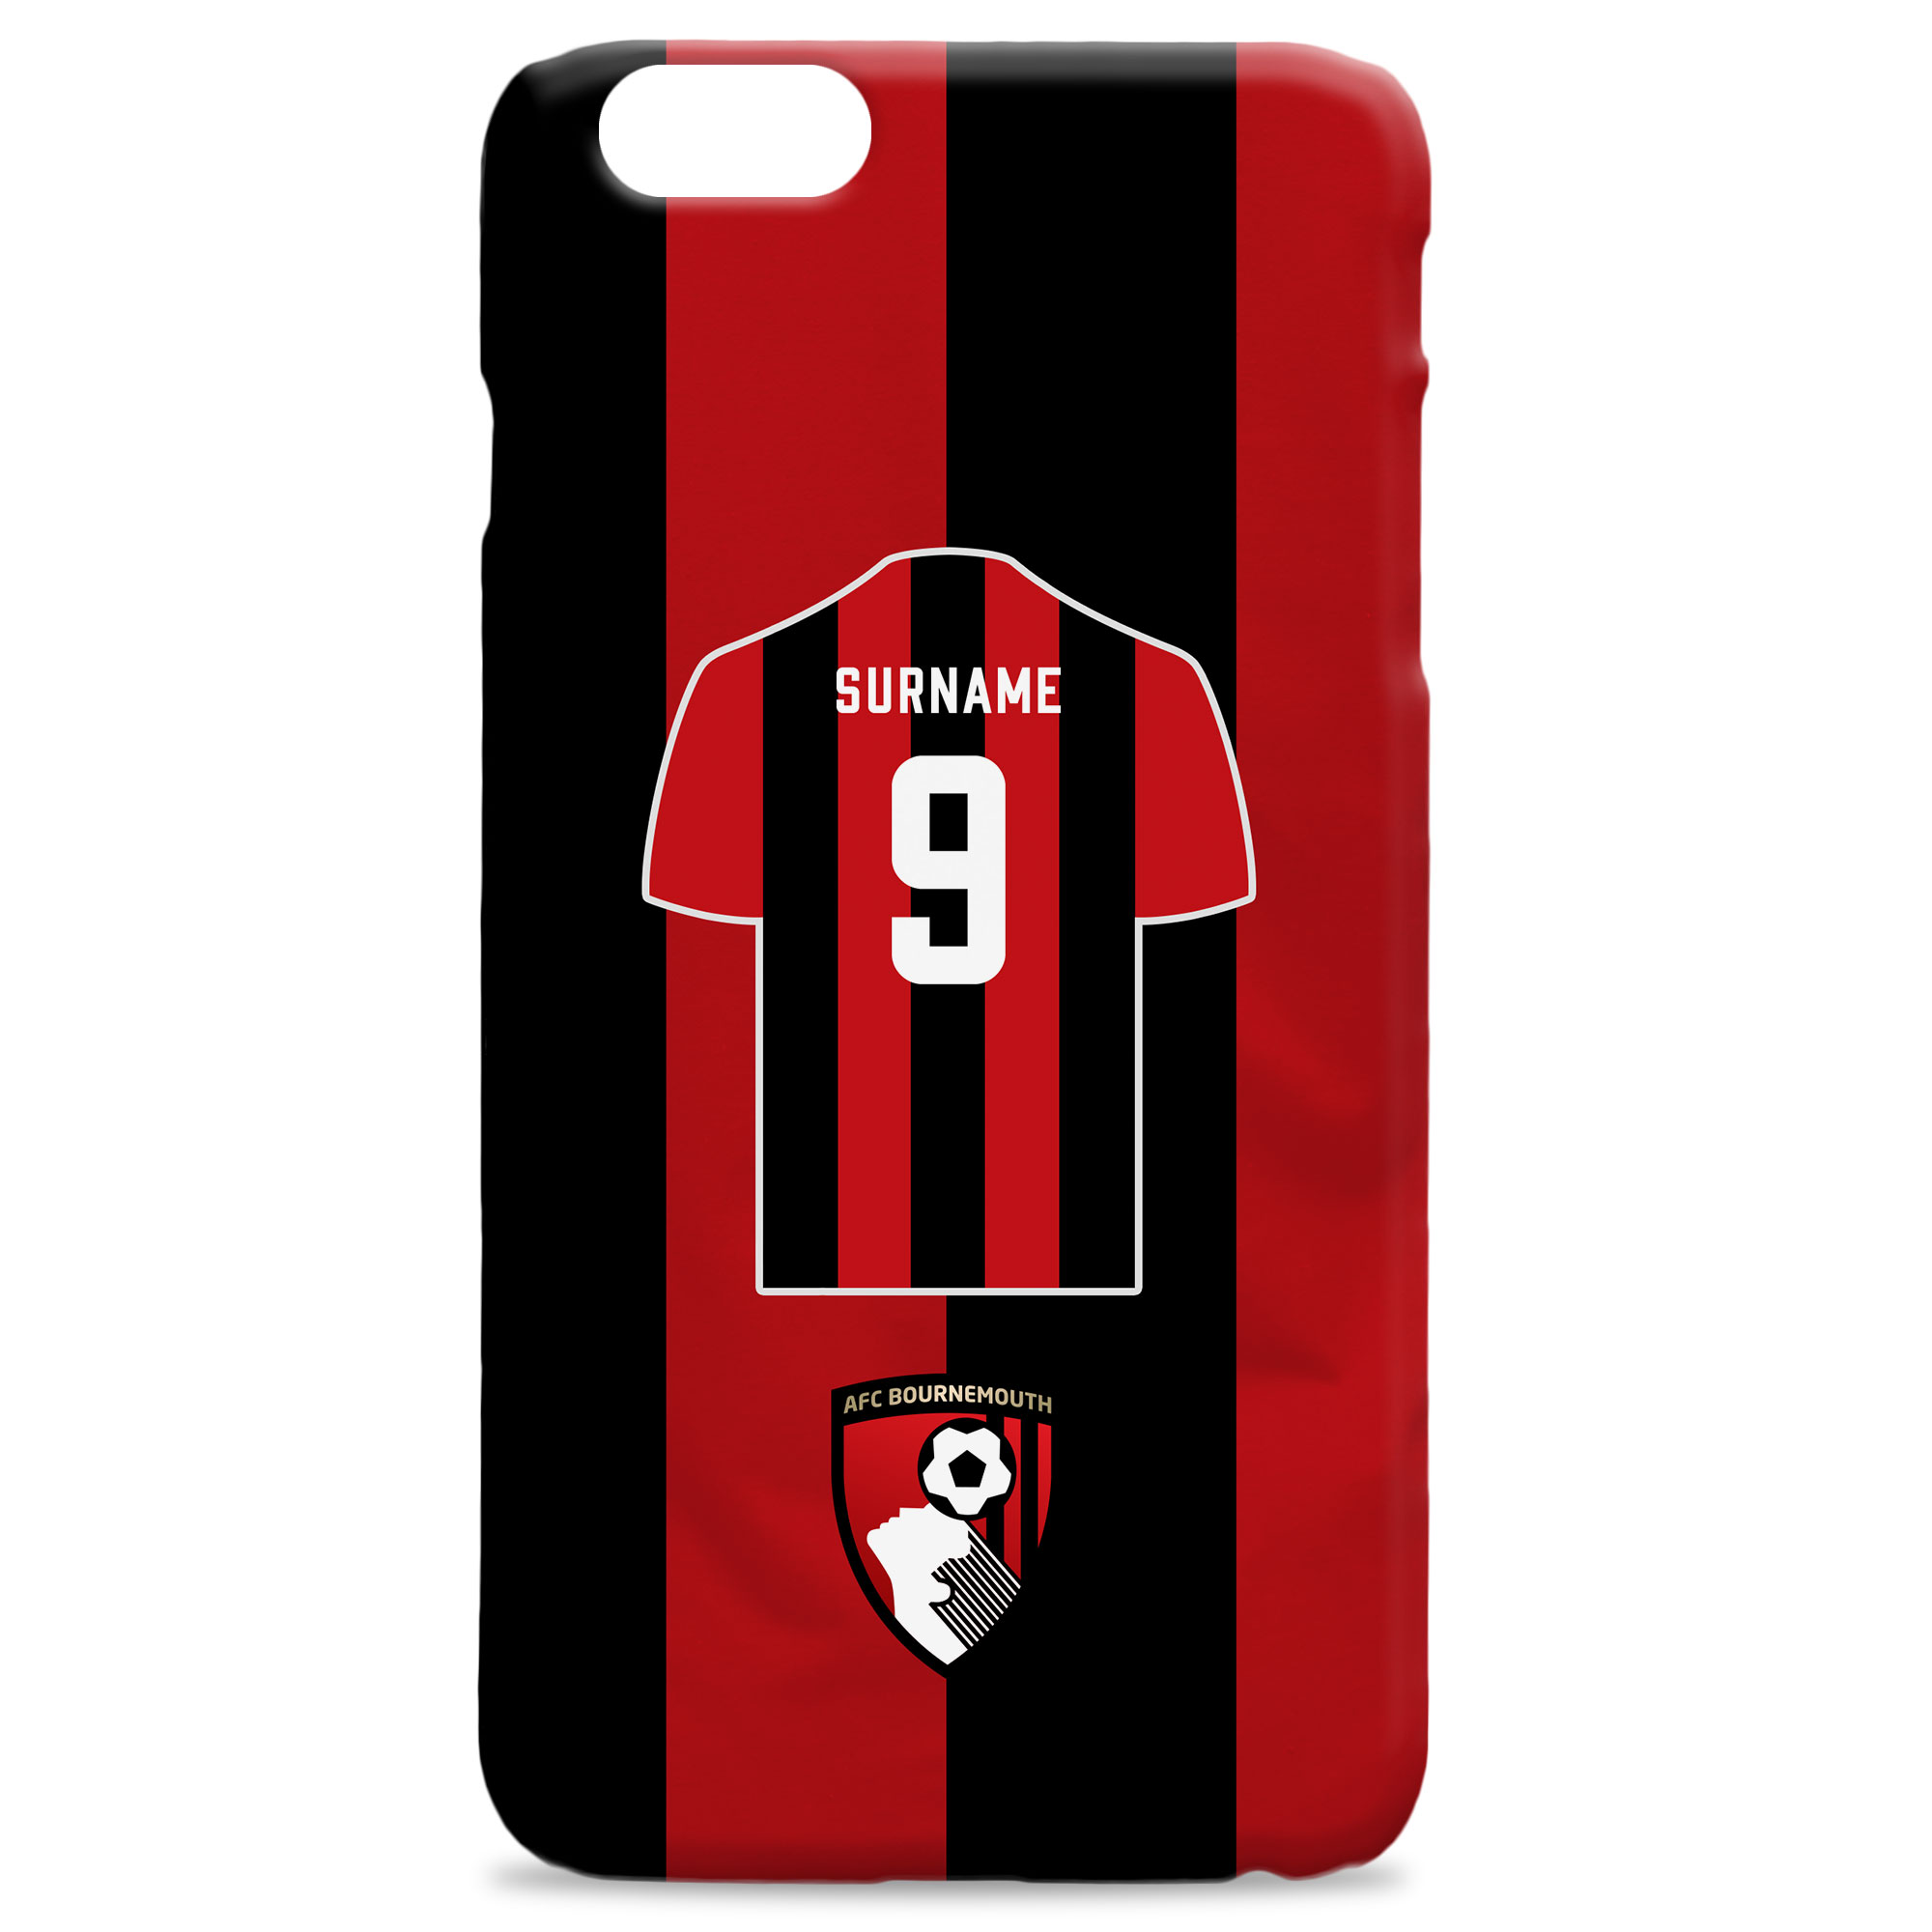 AFC Bournemouth Shirt Hard Back Phone Case